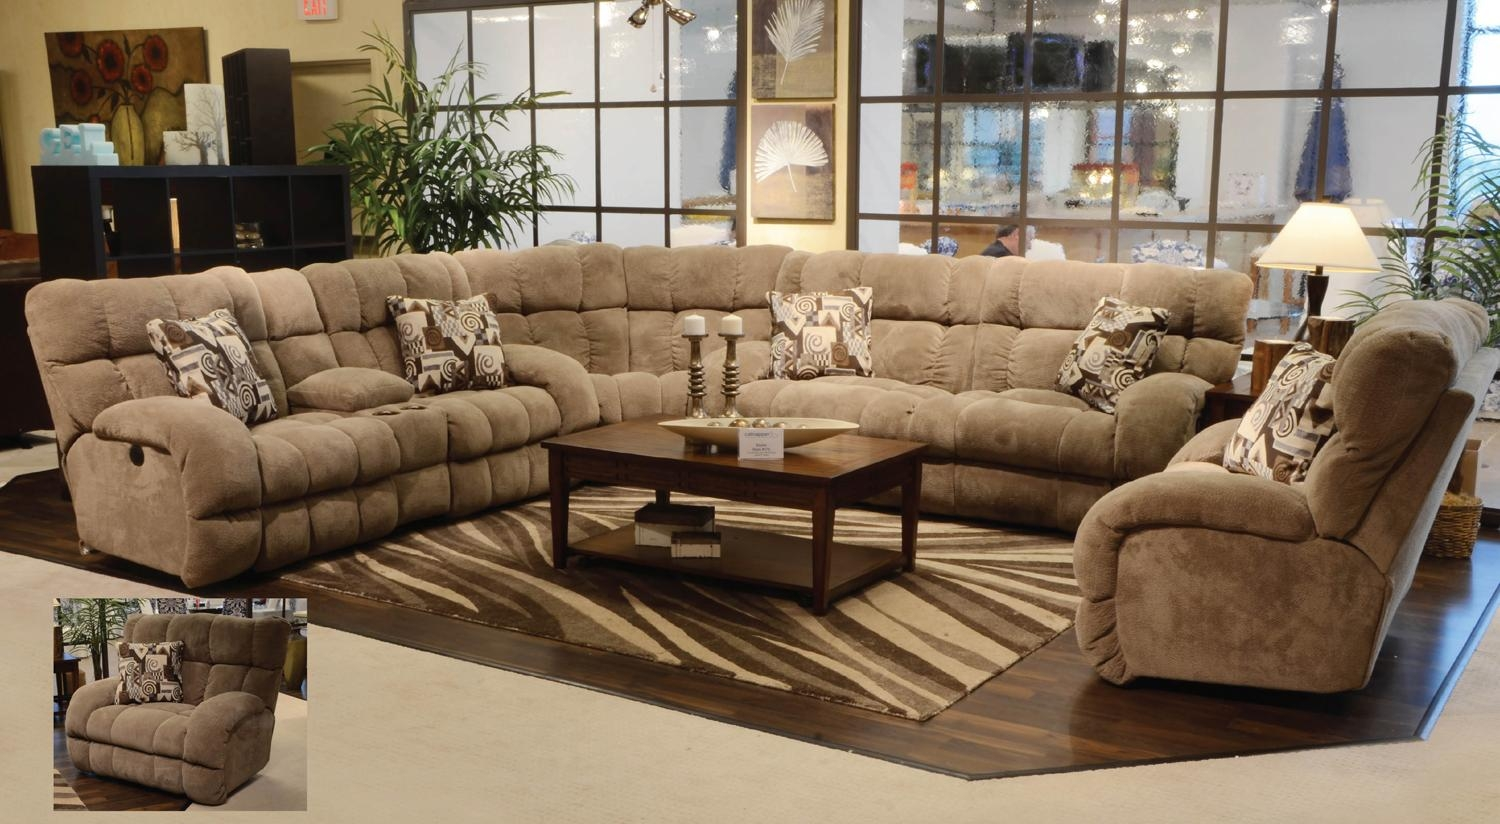 Featured Image of Long Sectional Sofa With Chaise